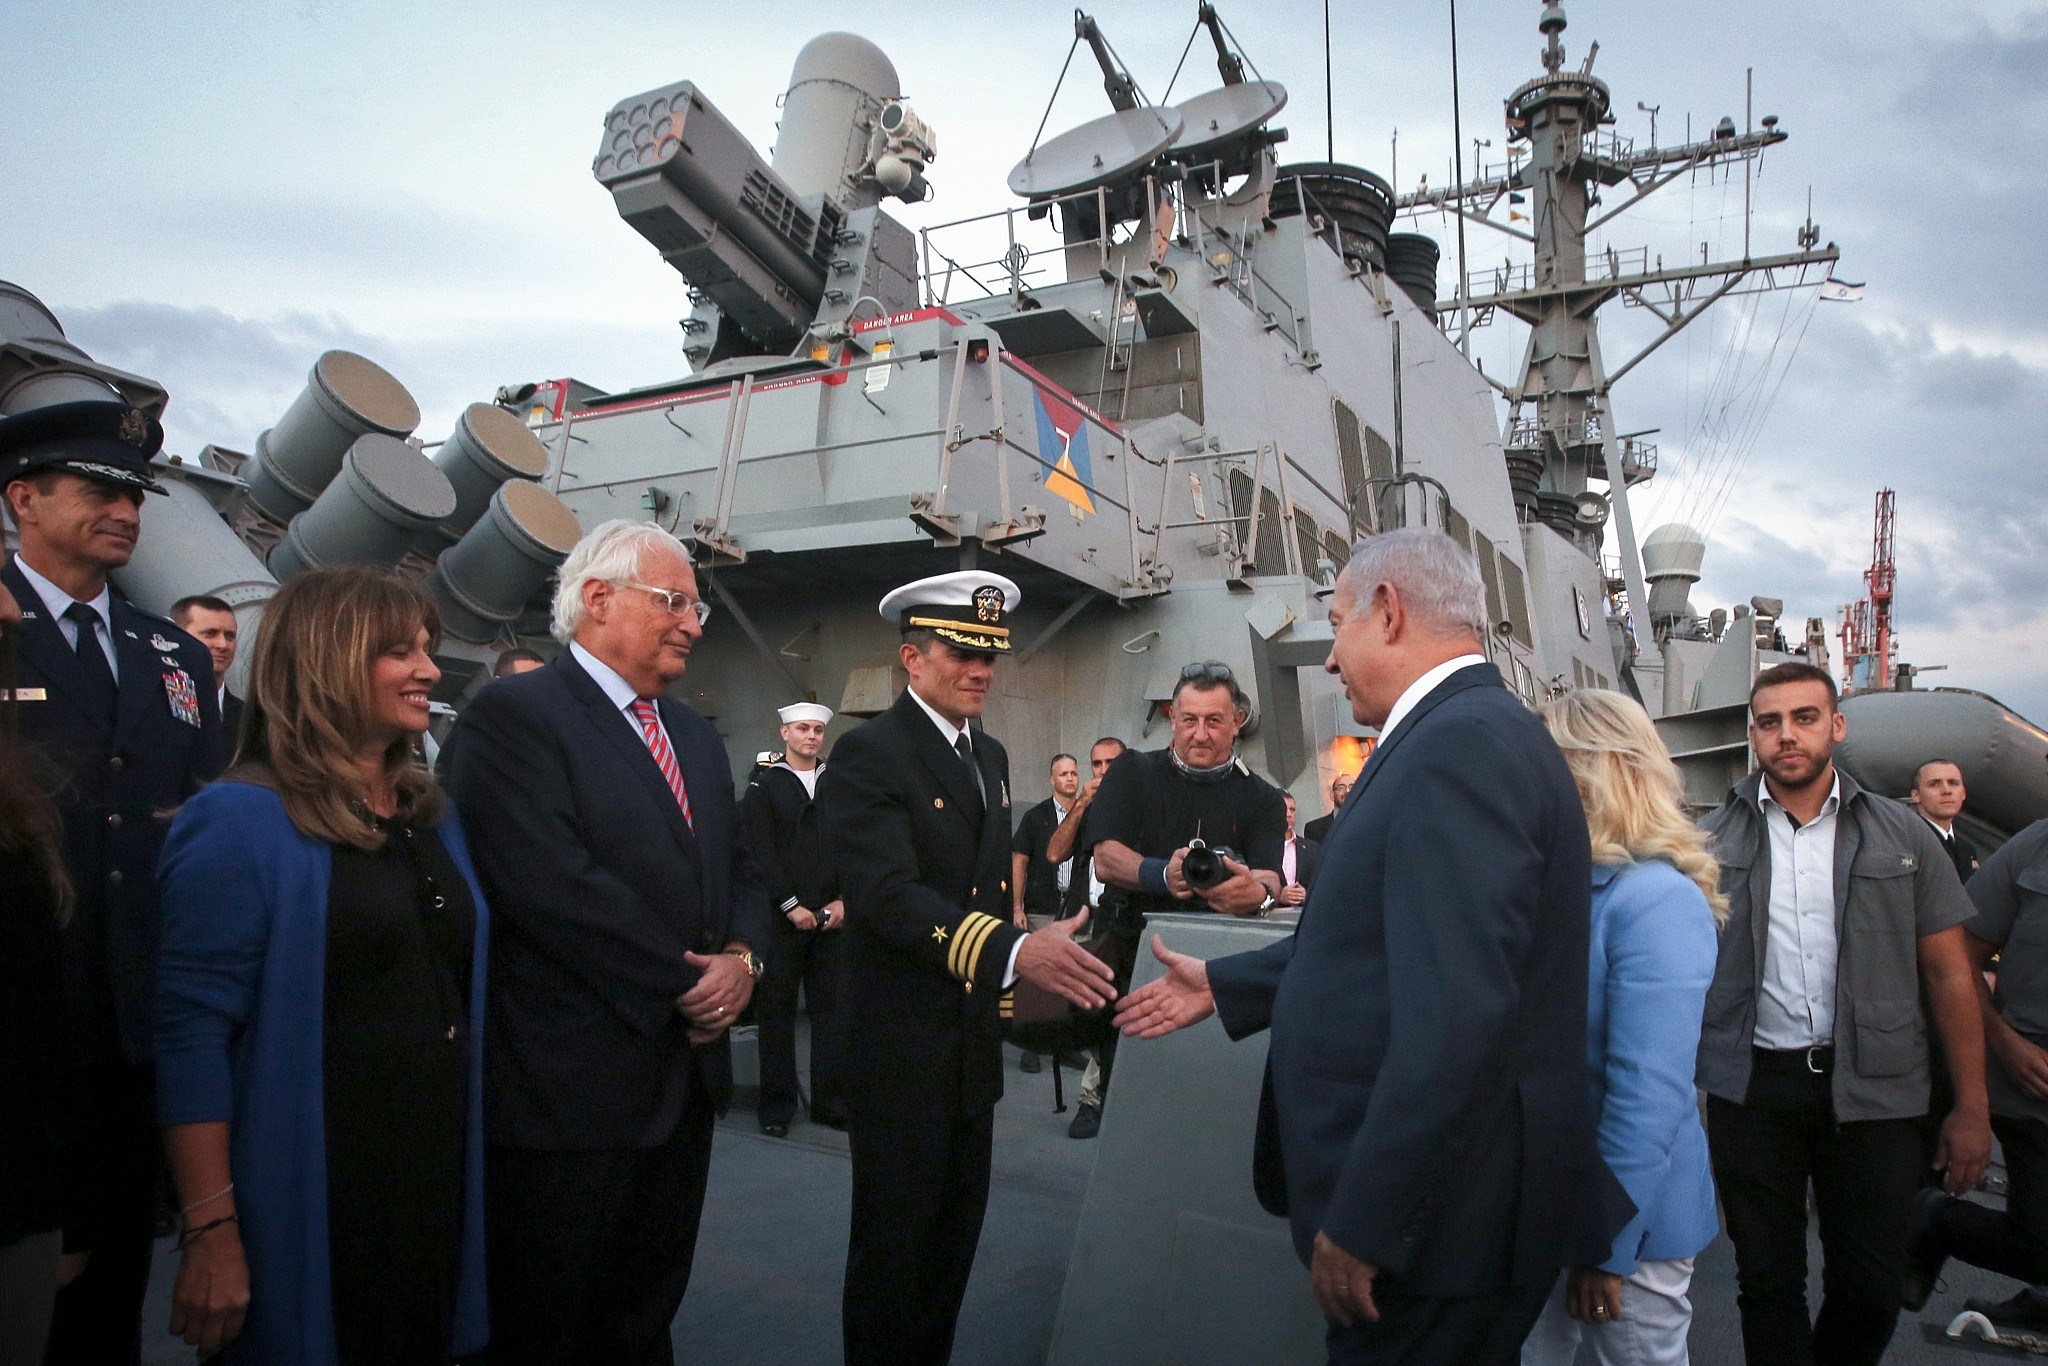 Prime Minister Benjamin Netanyahu third right and US Ambassador David Friedman third left aboard the US Navy's guided-missile destroyer USS Ross docked at Ashdod Port